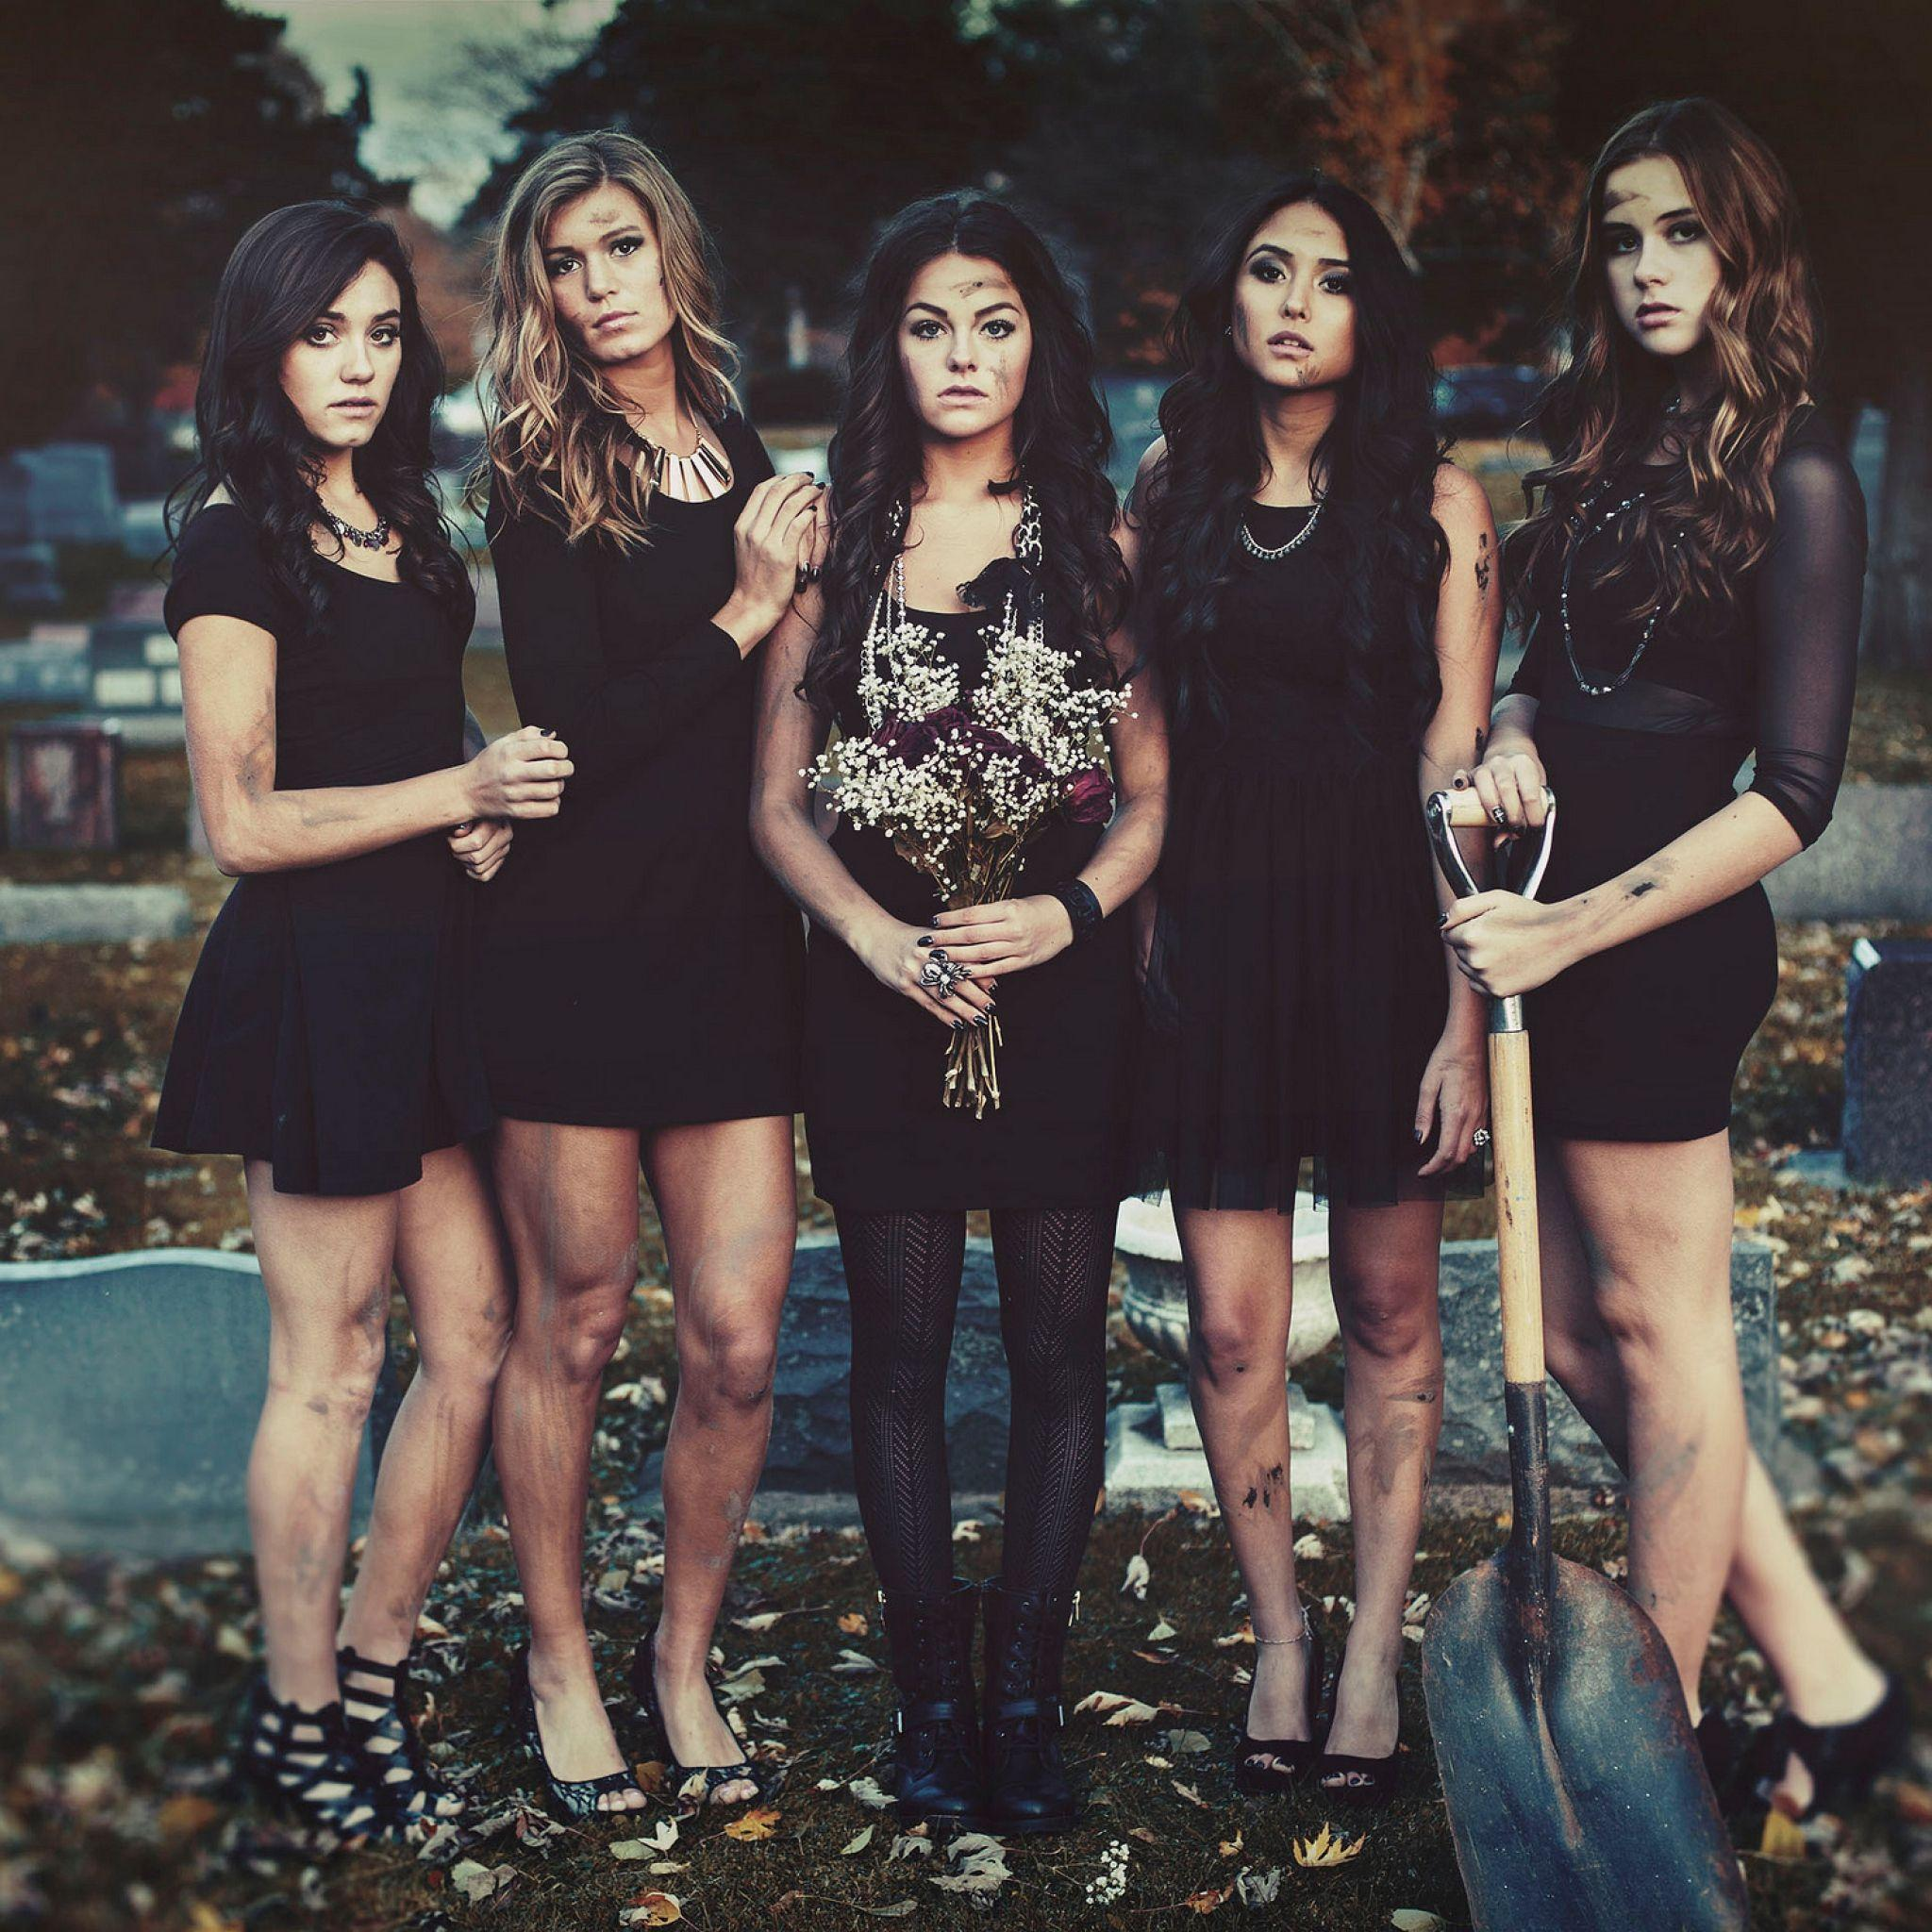 Pretty Little Liars Wallpapers 2016 - Wallpaper Cave